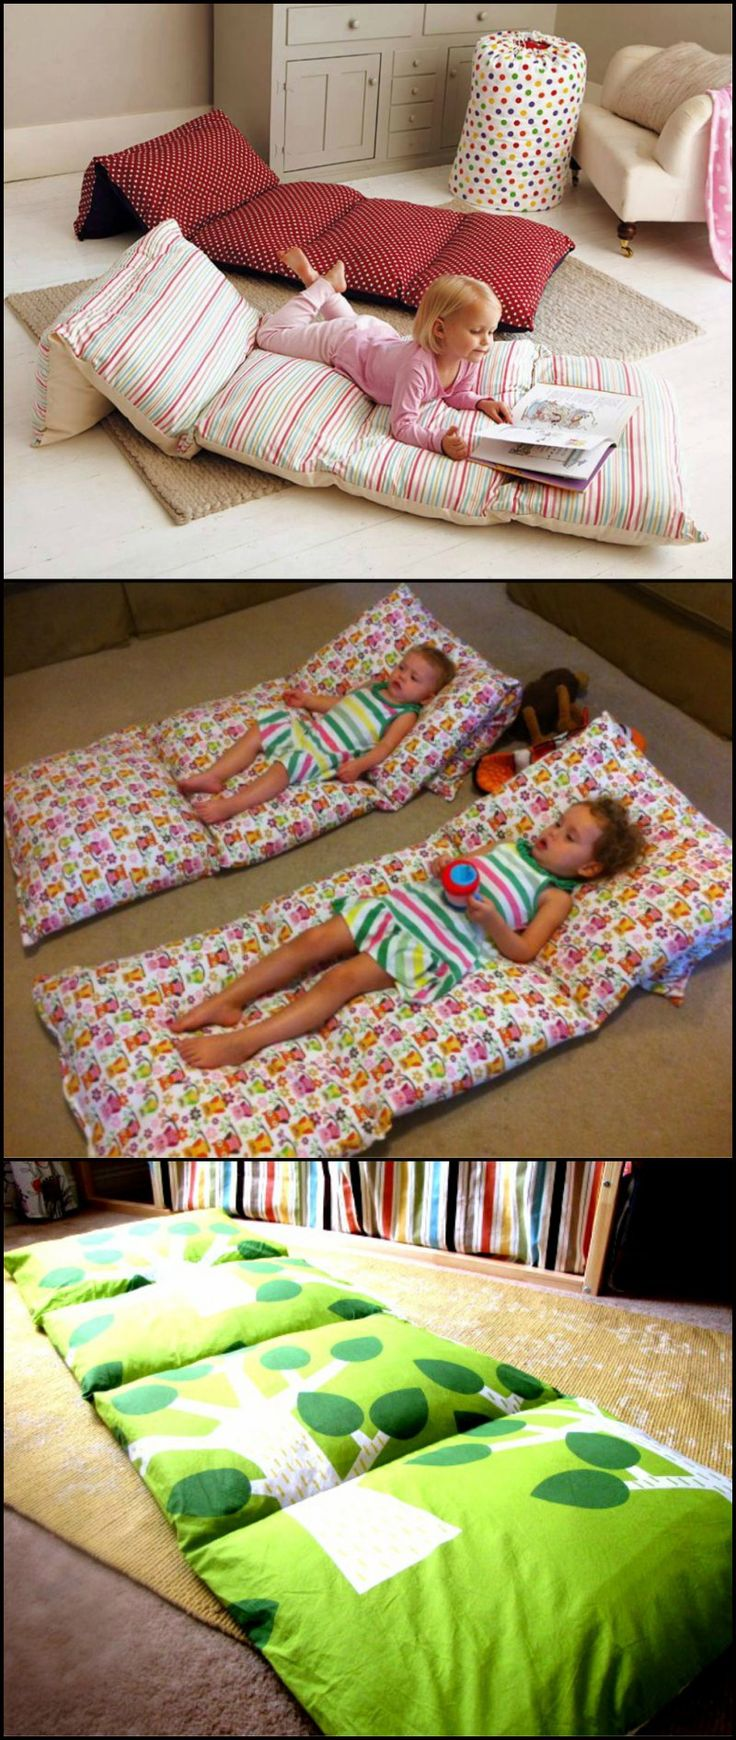 If you have extra pillows in your home, you can turn them into a small bed for the kids while watching TV or reading a book.  http://craft.ideas2live4.com/2015/03/31/pillow-beds/  Got some extra pillows?